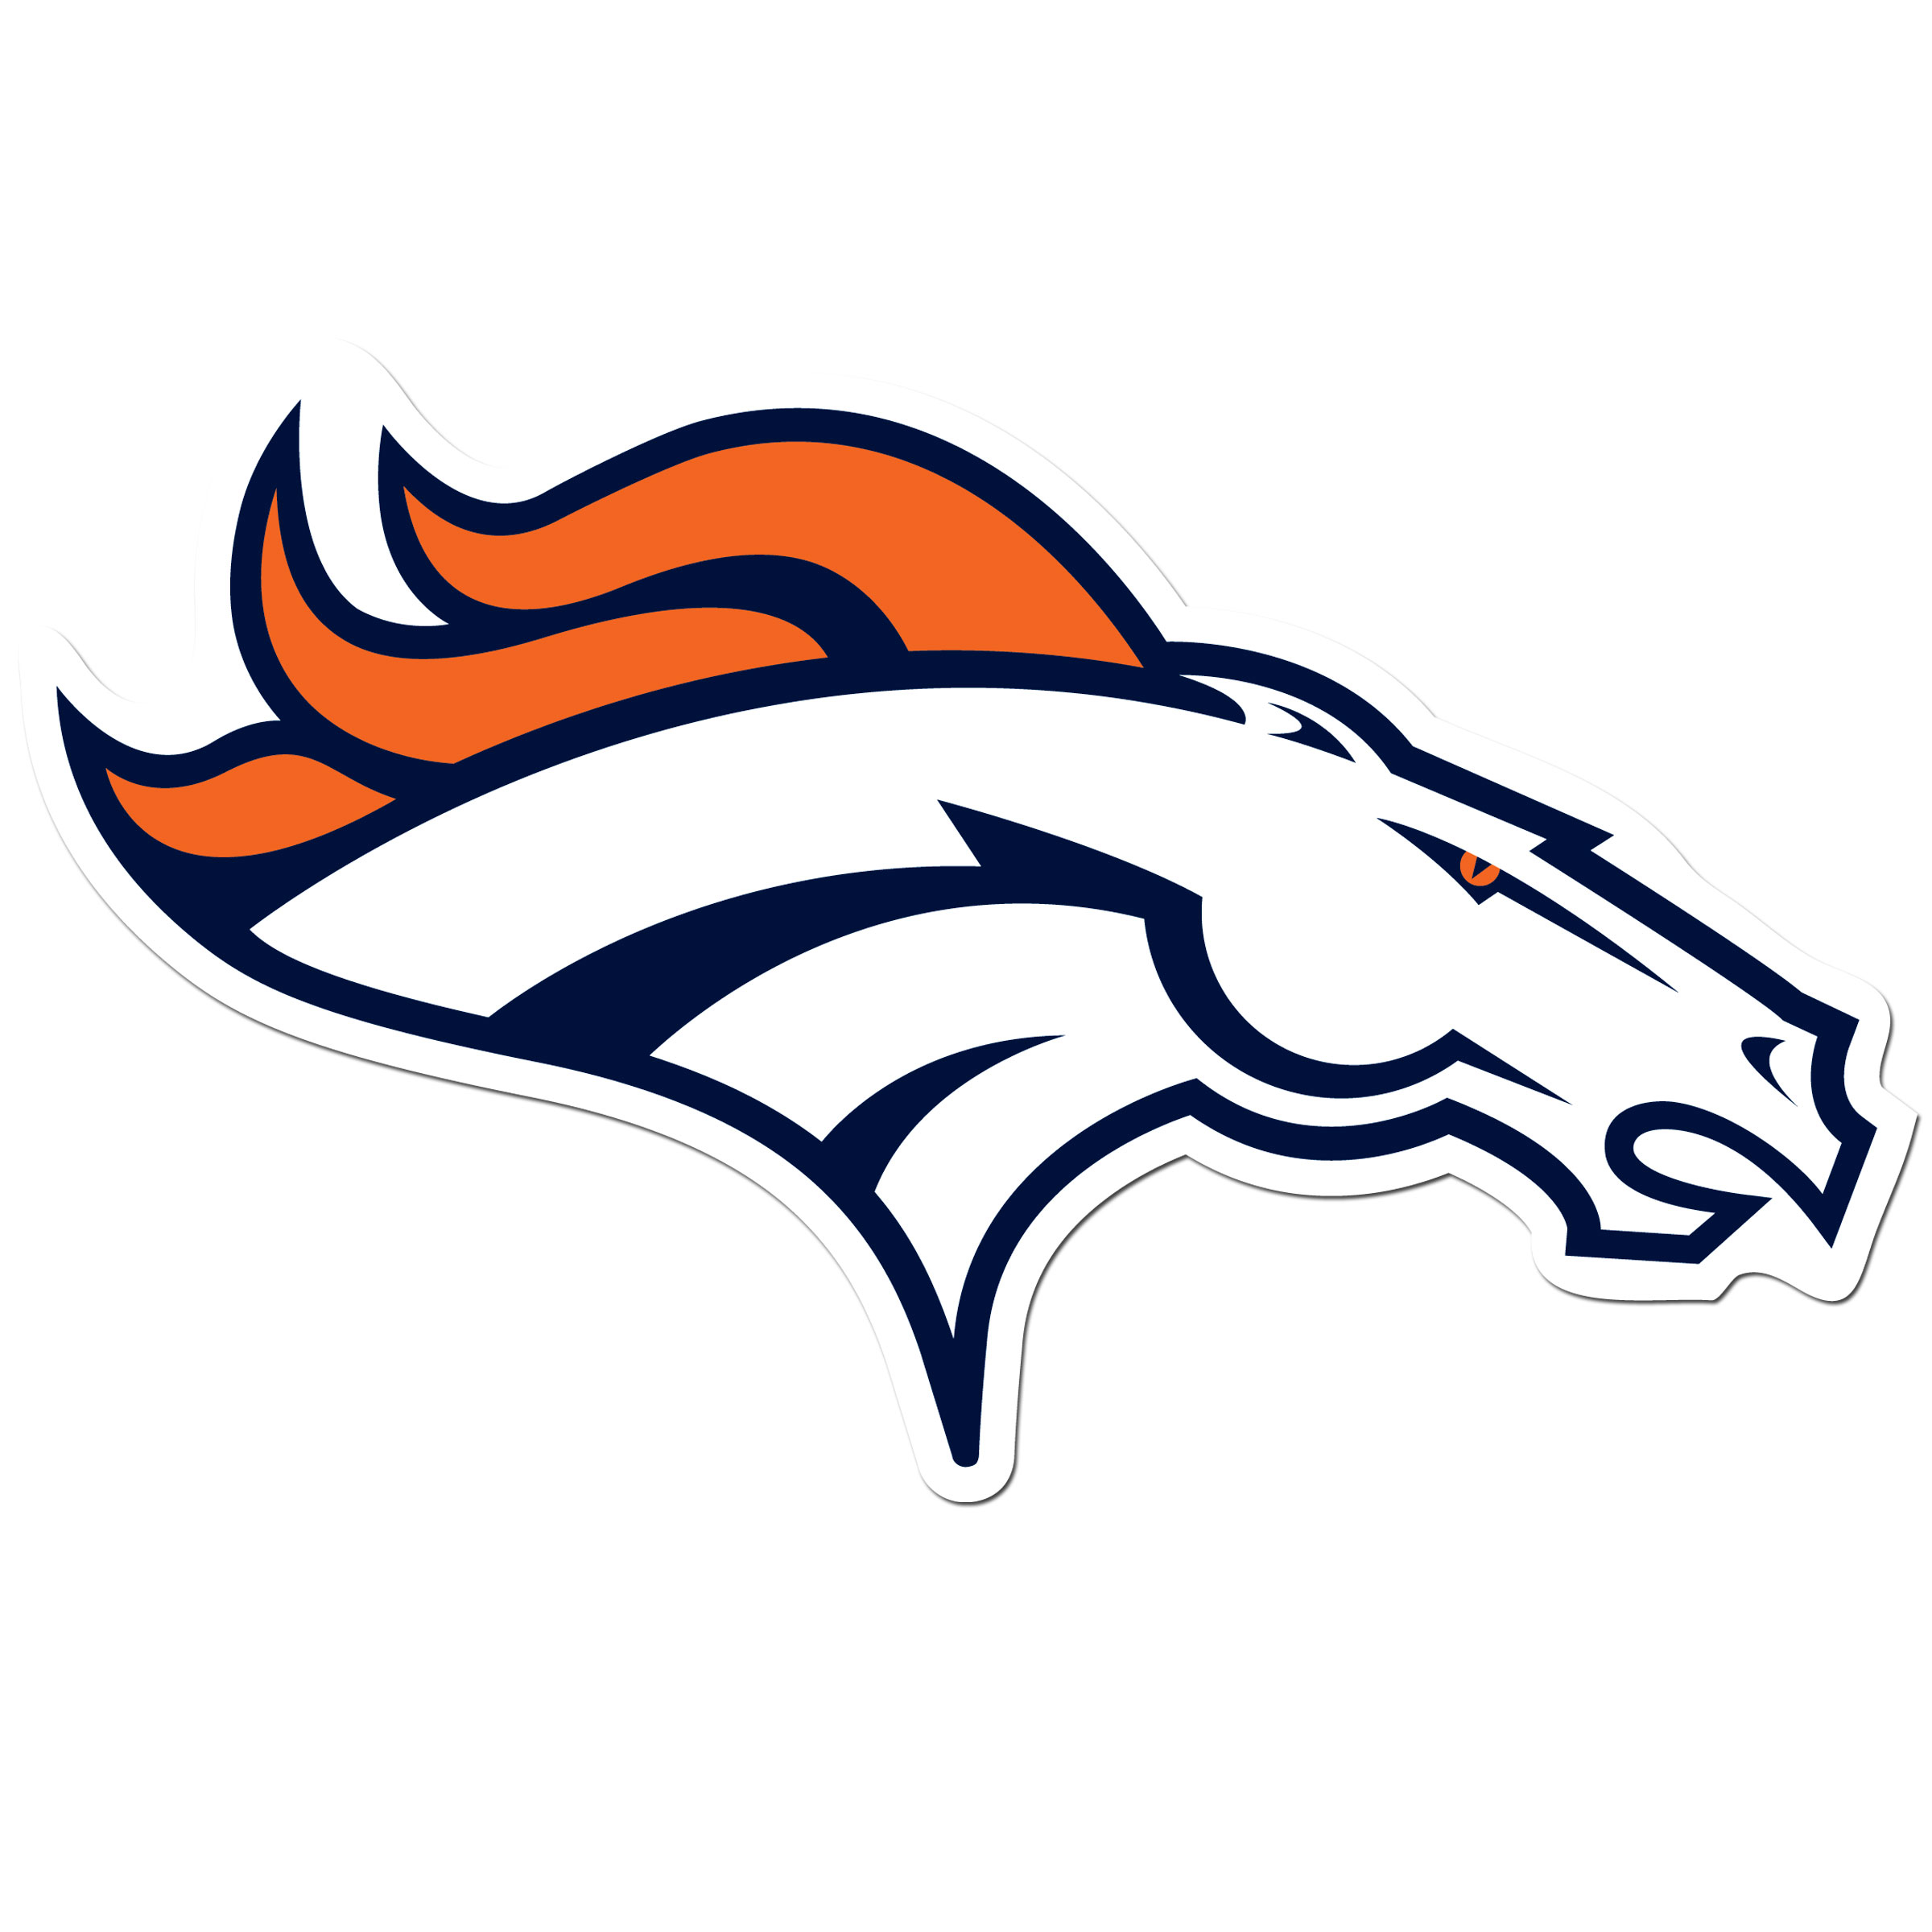 Denver Broncos 8 inch Auto Decal - This bold, 8 inch Denver Broncos is a great way to show off your team pride! The low tack vinyl decal is easily positioned and adjusted to make sure you get that logo in just the right spot on your vehicle. Designed to be used on the outside of the window.